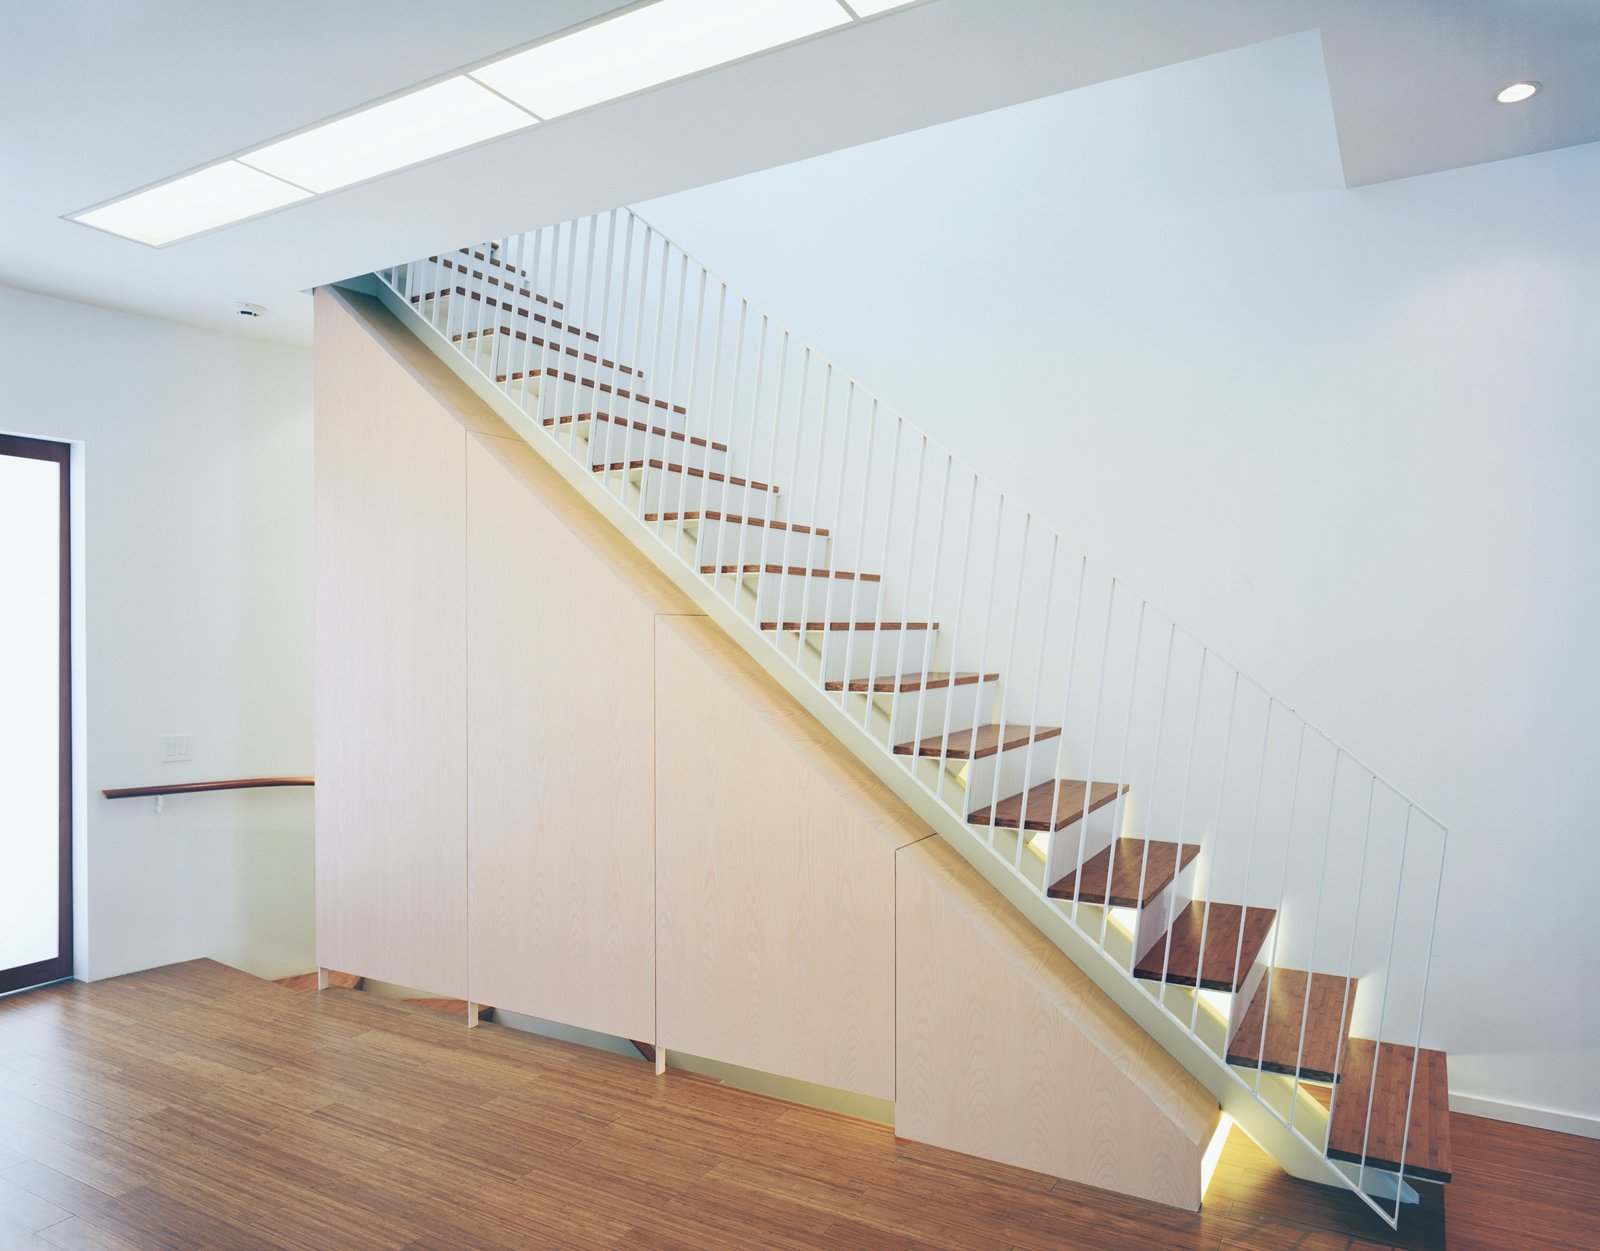 Briggs and Knowles's elegant staircase draws upon the language of the oculus; the stairs are underlit with fluorescent lighting, which accents the line of the steps, giving them an ethereal, almost weightless quality. Tagged: Staircase, Metal Railing, and Wood Tread.  190+ Best Modern Staircase Ideas by Dwell from Modern Rowhouse Renovation in New York